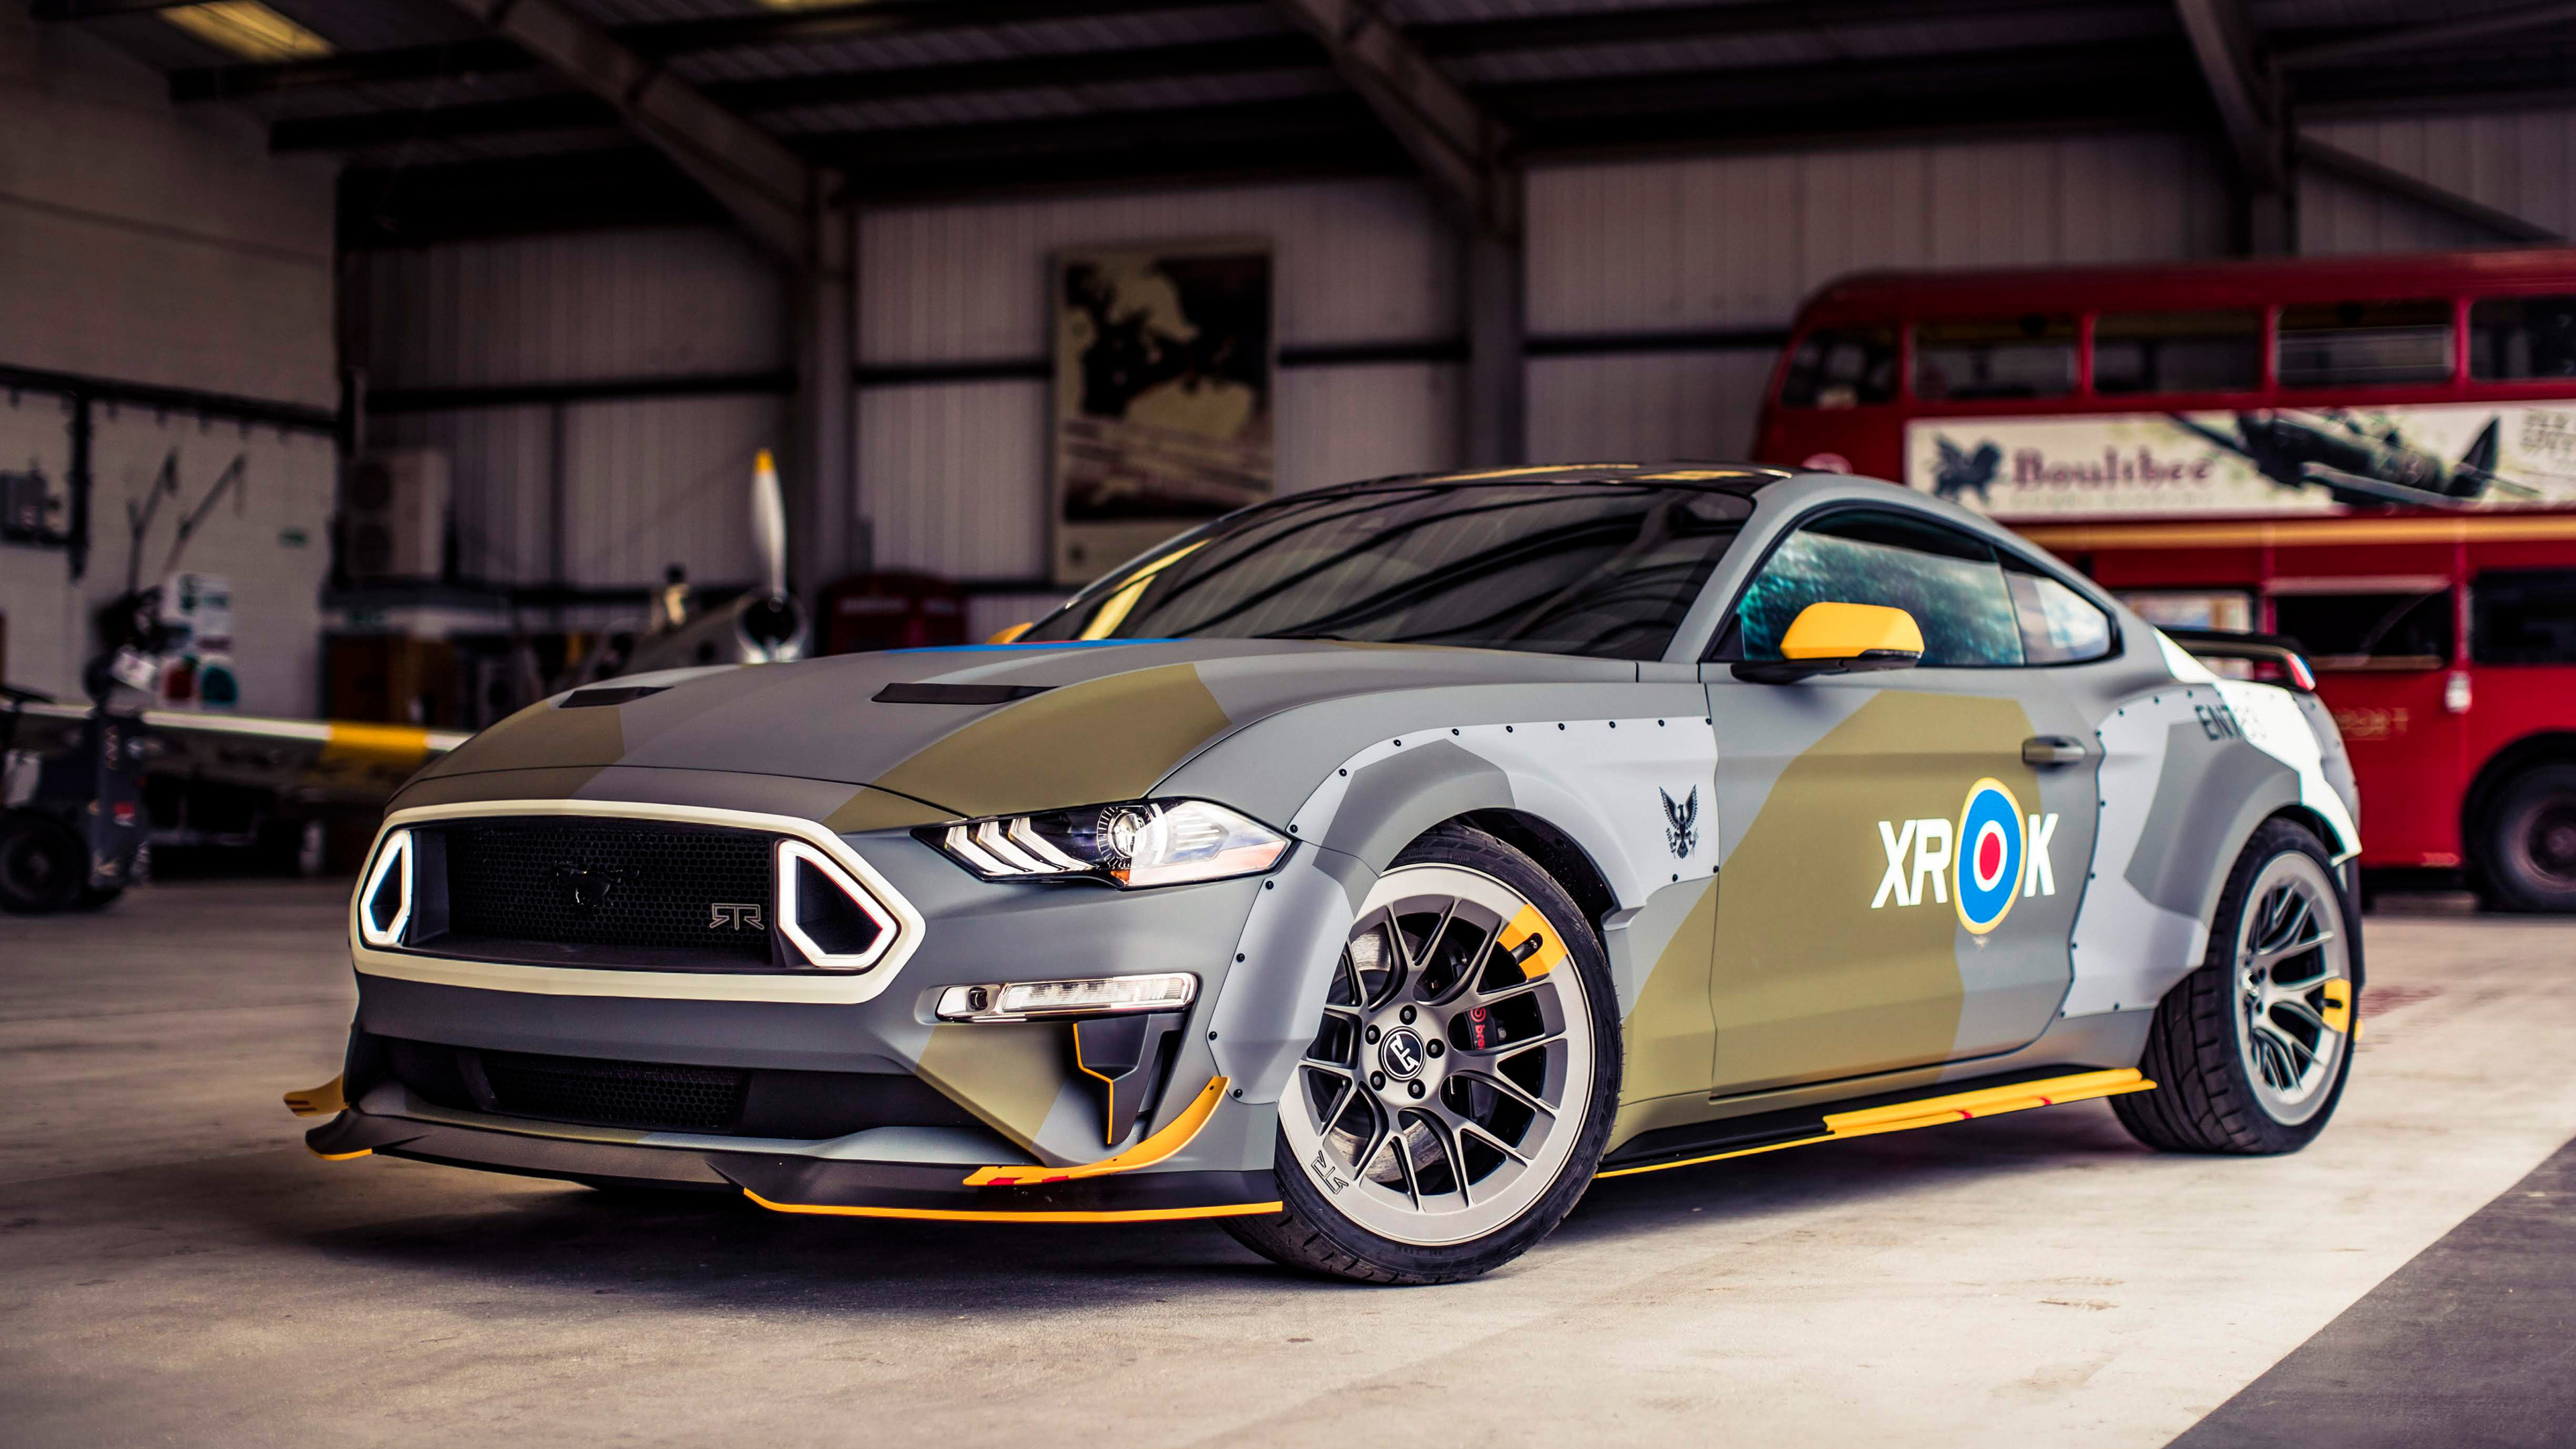 ford eagle squadron mustang gt 2018 1539112388 - Ford Eagle Squadron Mustang GT 2018 - mustang wallpapers, hd-wallpapers, ford wallpapers, ford mustang wallpapers, 4k-wallpapers, 2018 cars wallpapers